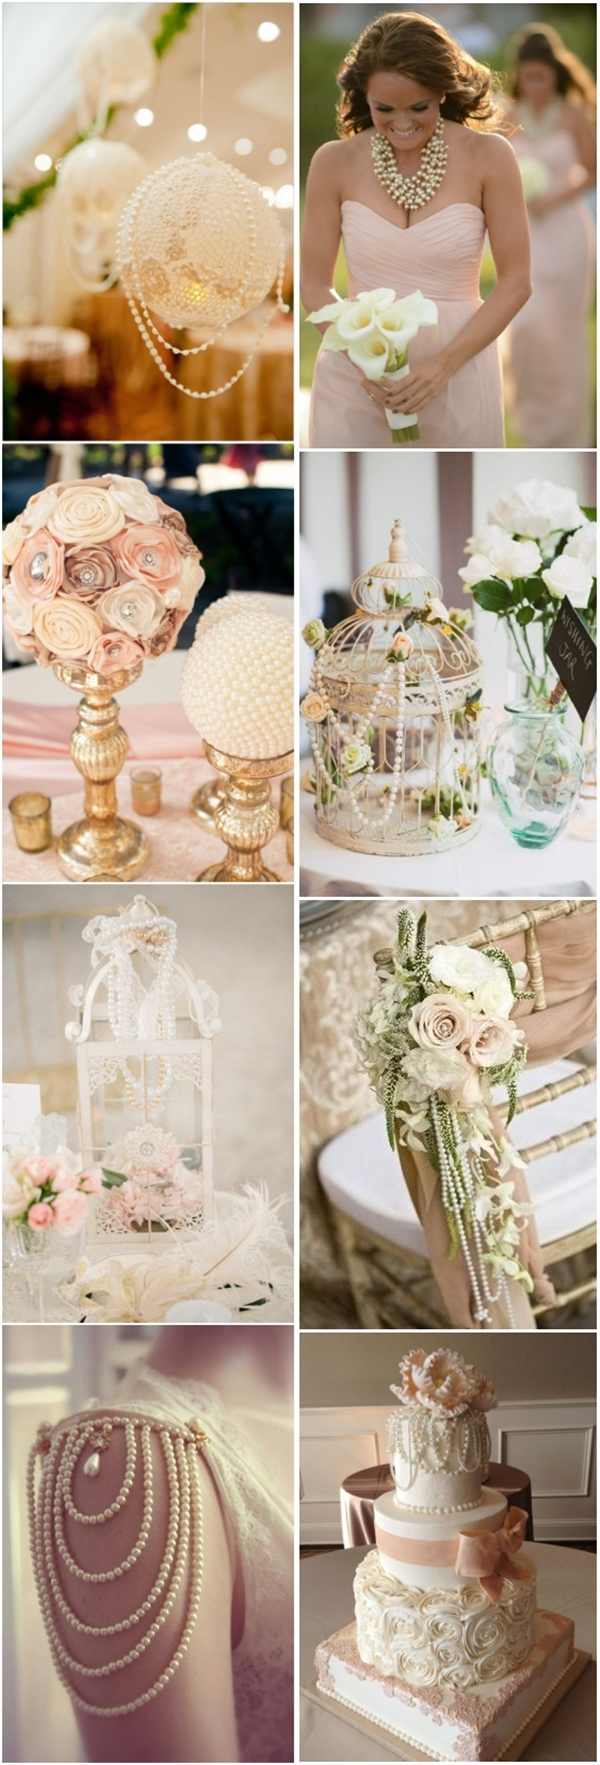 Vintage Wedding Ideas 35 Vintage Wedding Ideas With Pearl Details Tulle Chantilly